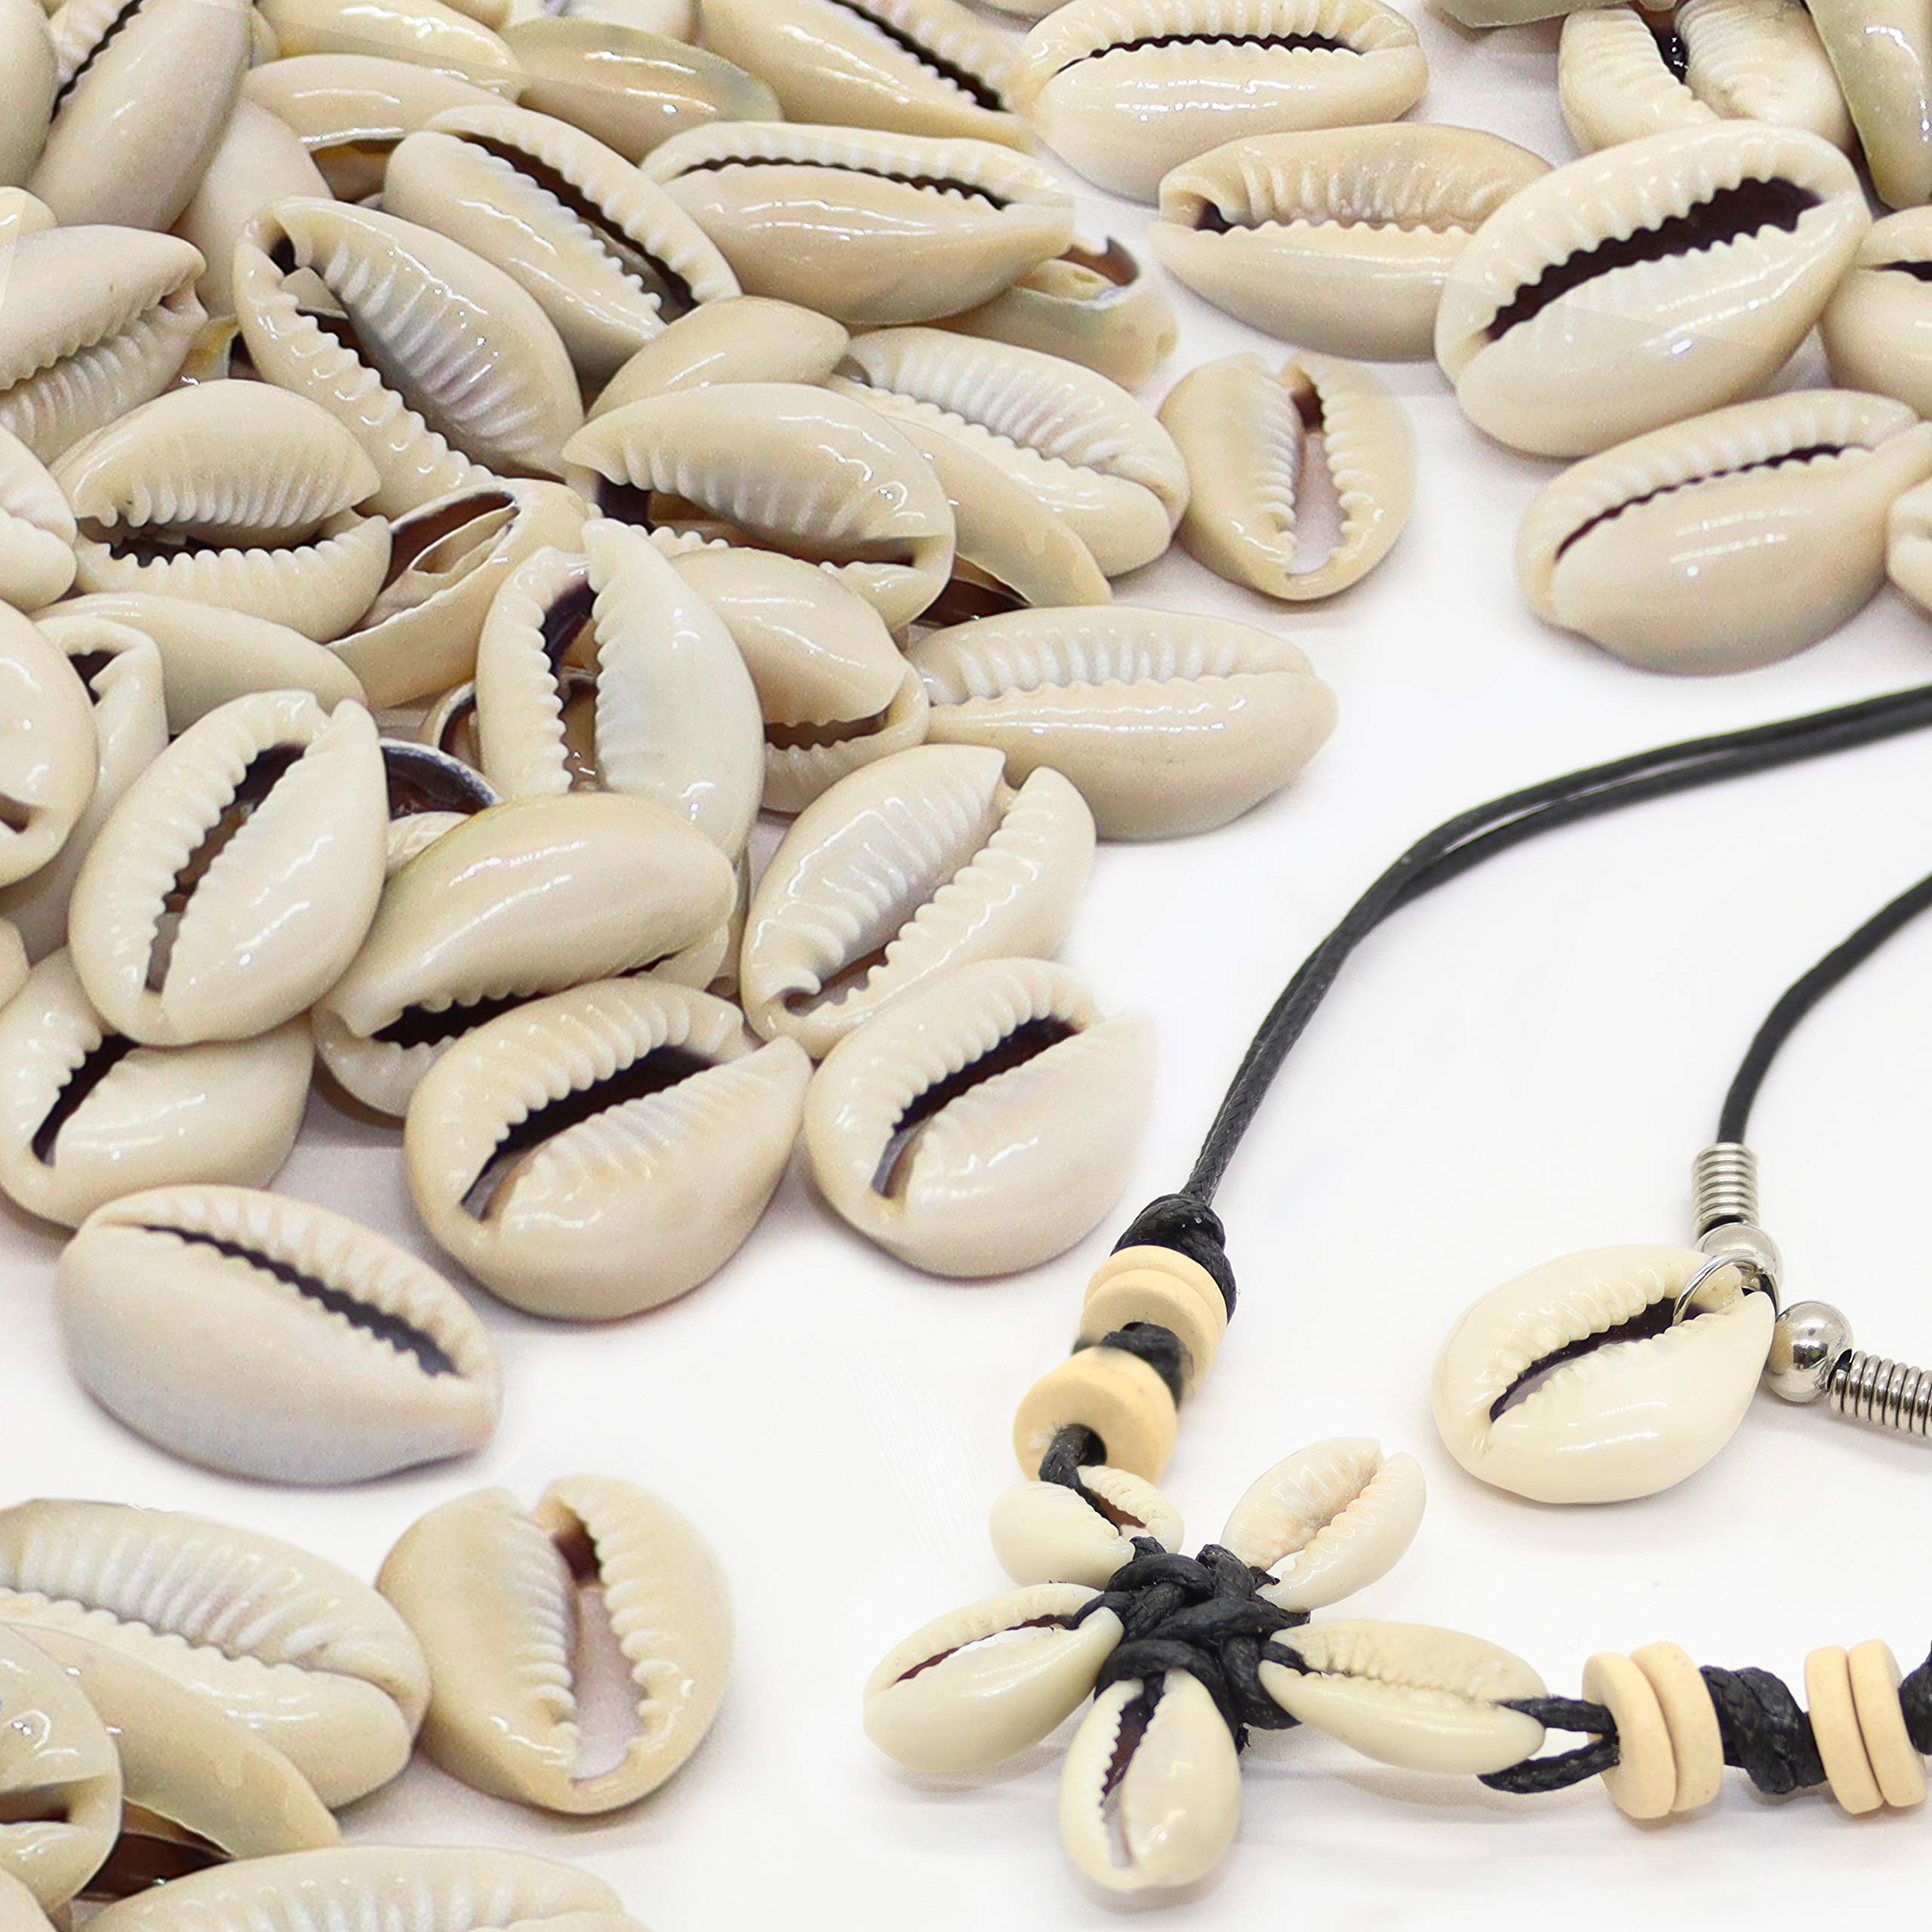 150 Genuine Cowrie Shells for Jewelry Making Adults, Natural Smooth Cut Cowrie Shell Beads, Medium Puka Shells Bulk for Necklaces, Ocean Beach Seashells for Bracelets, Includes 2 Free Necklaces by Fun-Weevz